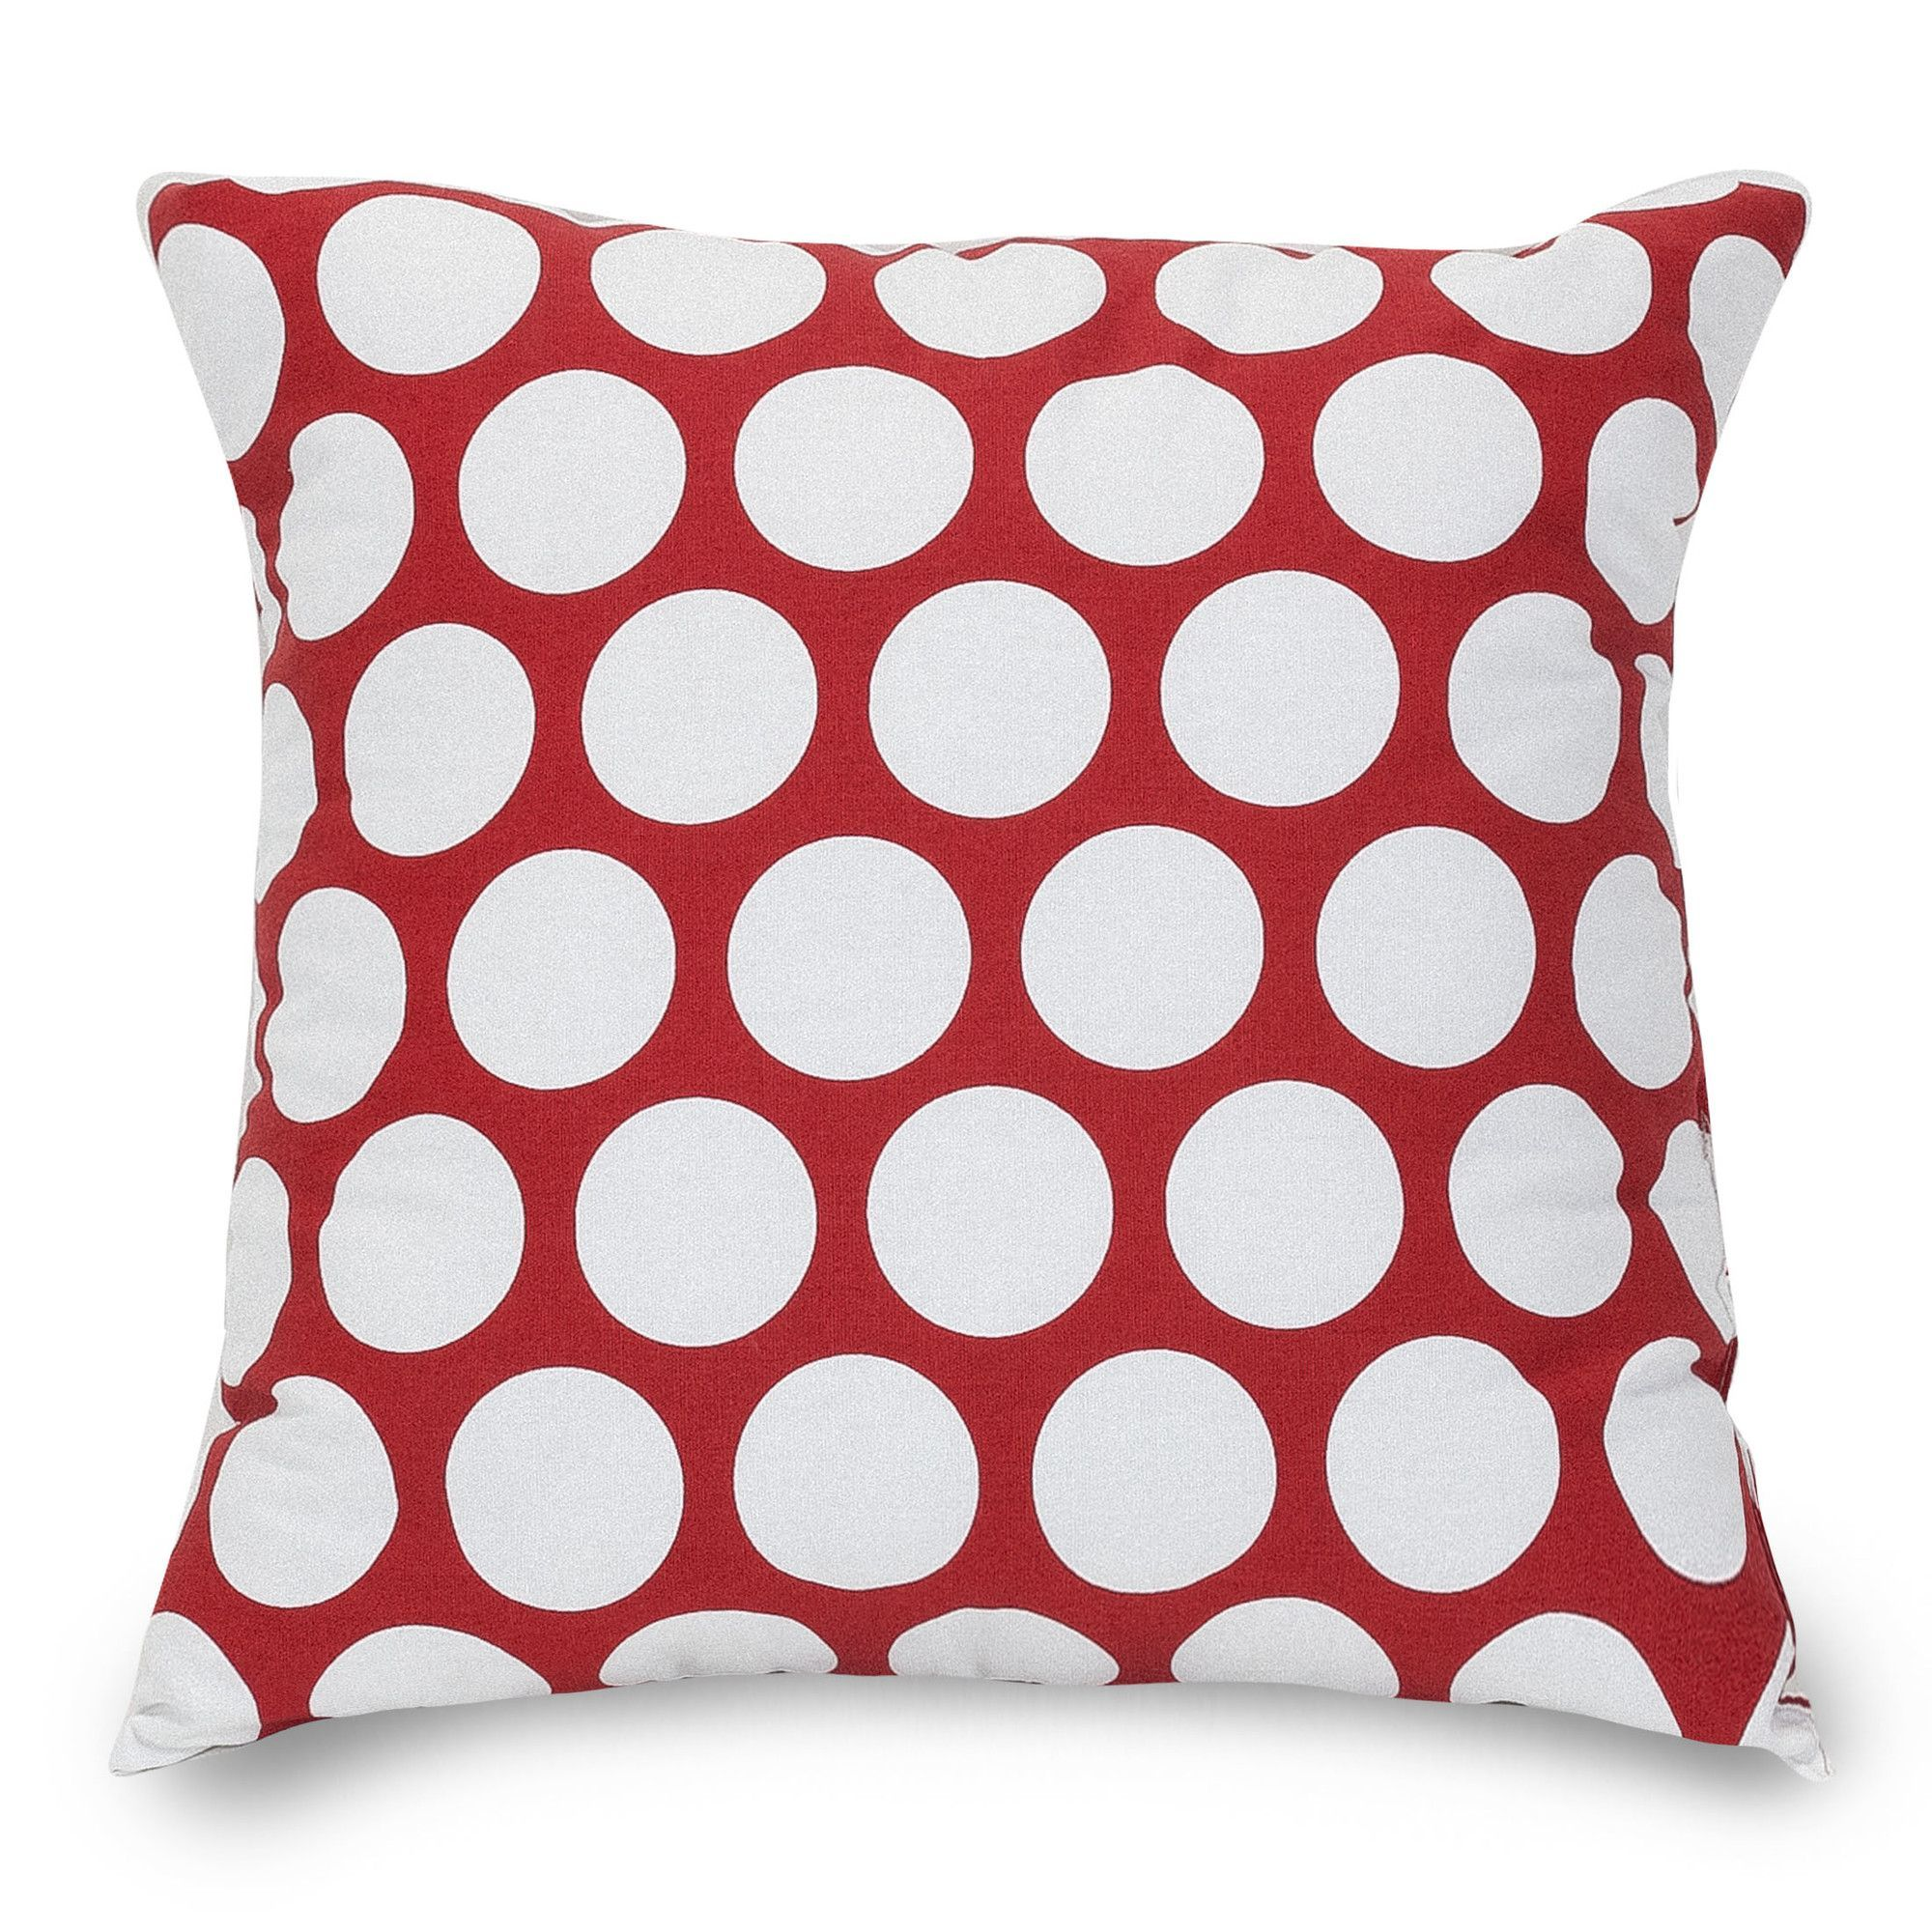 Trudy Cotton Throw Pillow | Dots, Polka dots and Large throw pillows - Polka Dot Large Throw Pillow